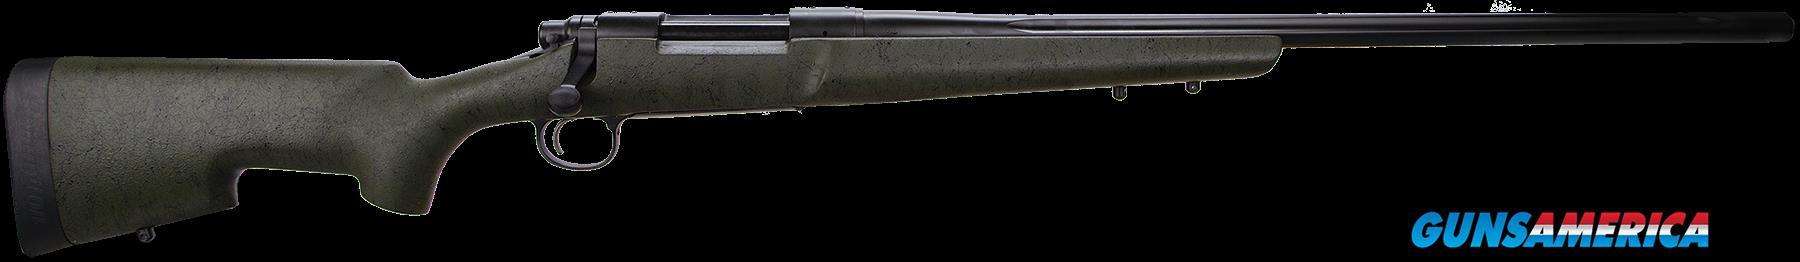 "Remington Firearms 84462 700 XCR Tactical Bolt 300 Winchester Magnum 26"" 3+1 Bell and Carlson Green  Guns > Rifles > R Misc Rifles"